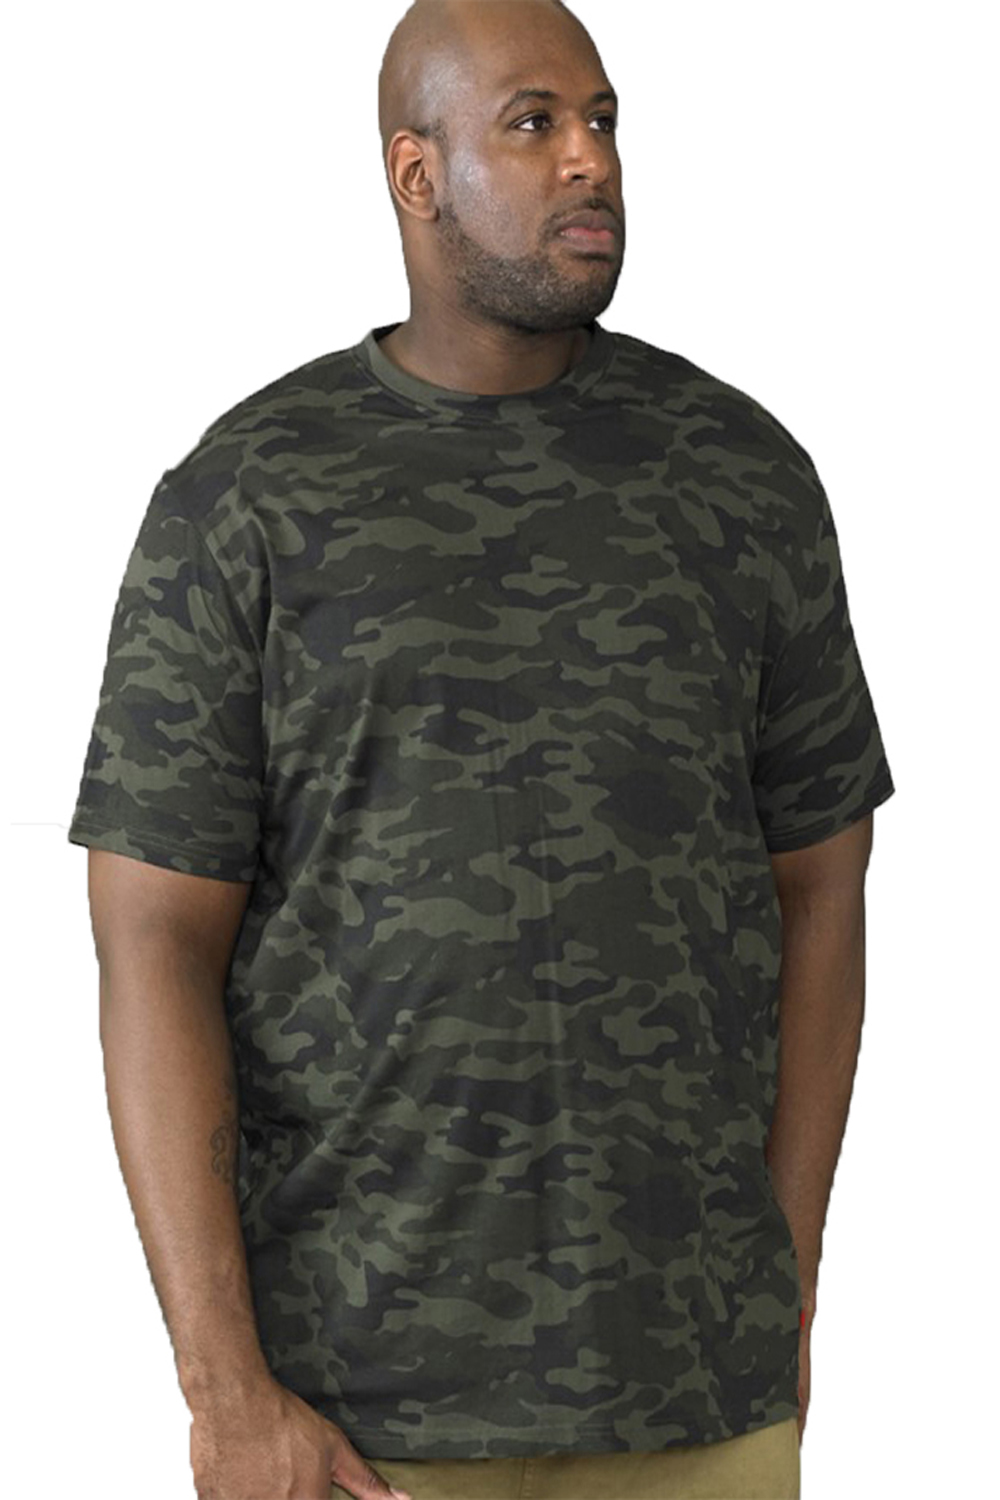 Duke-D555-Mens-Gaston-Big-Tall-King-Size-Camouflage-Army-Style-Camo-T-Shirt thumbnail 3